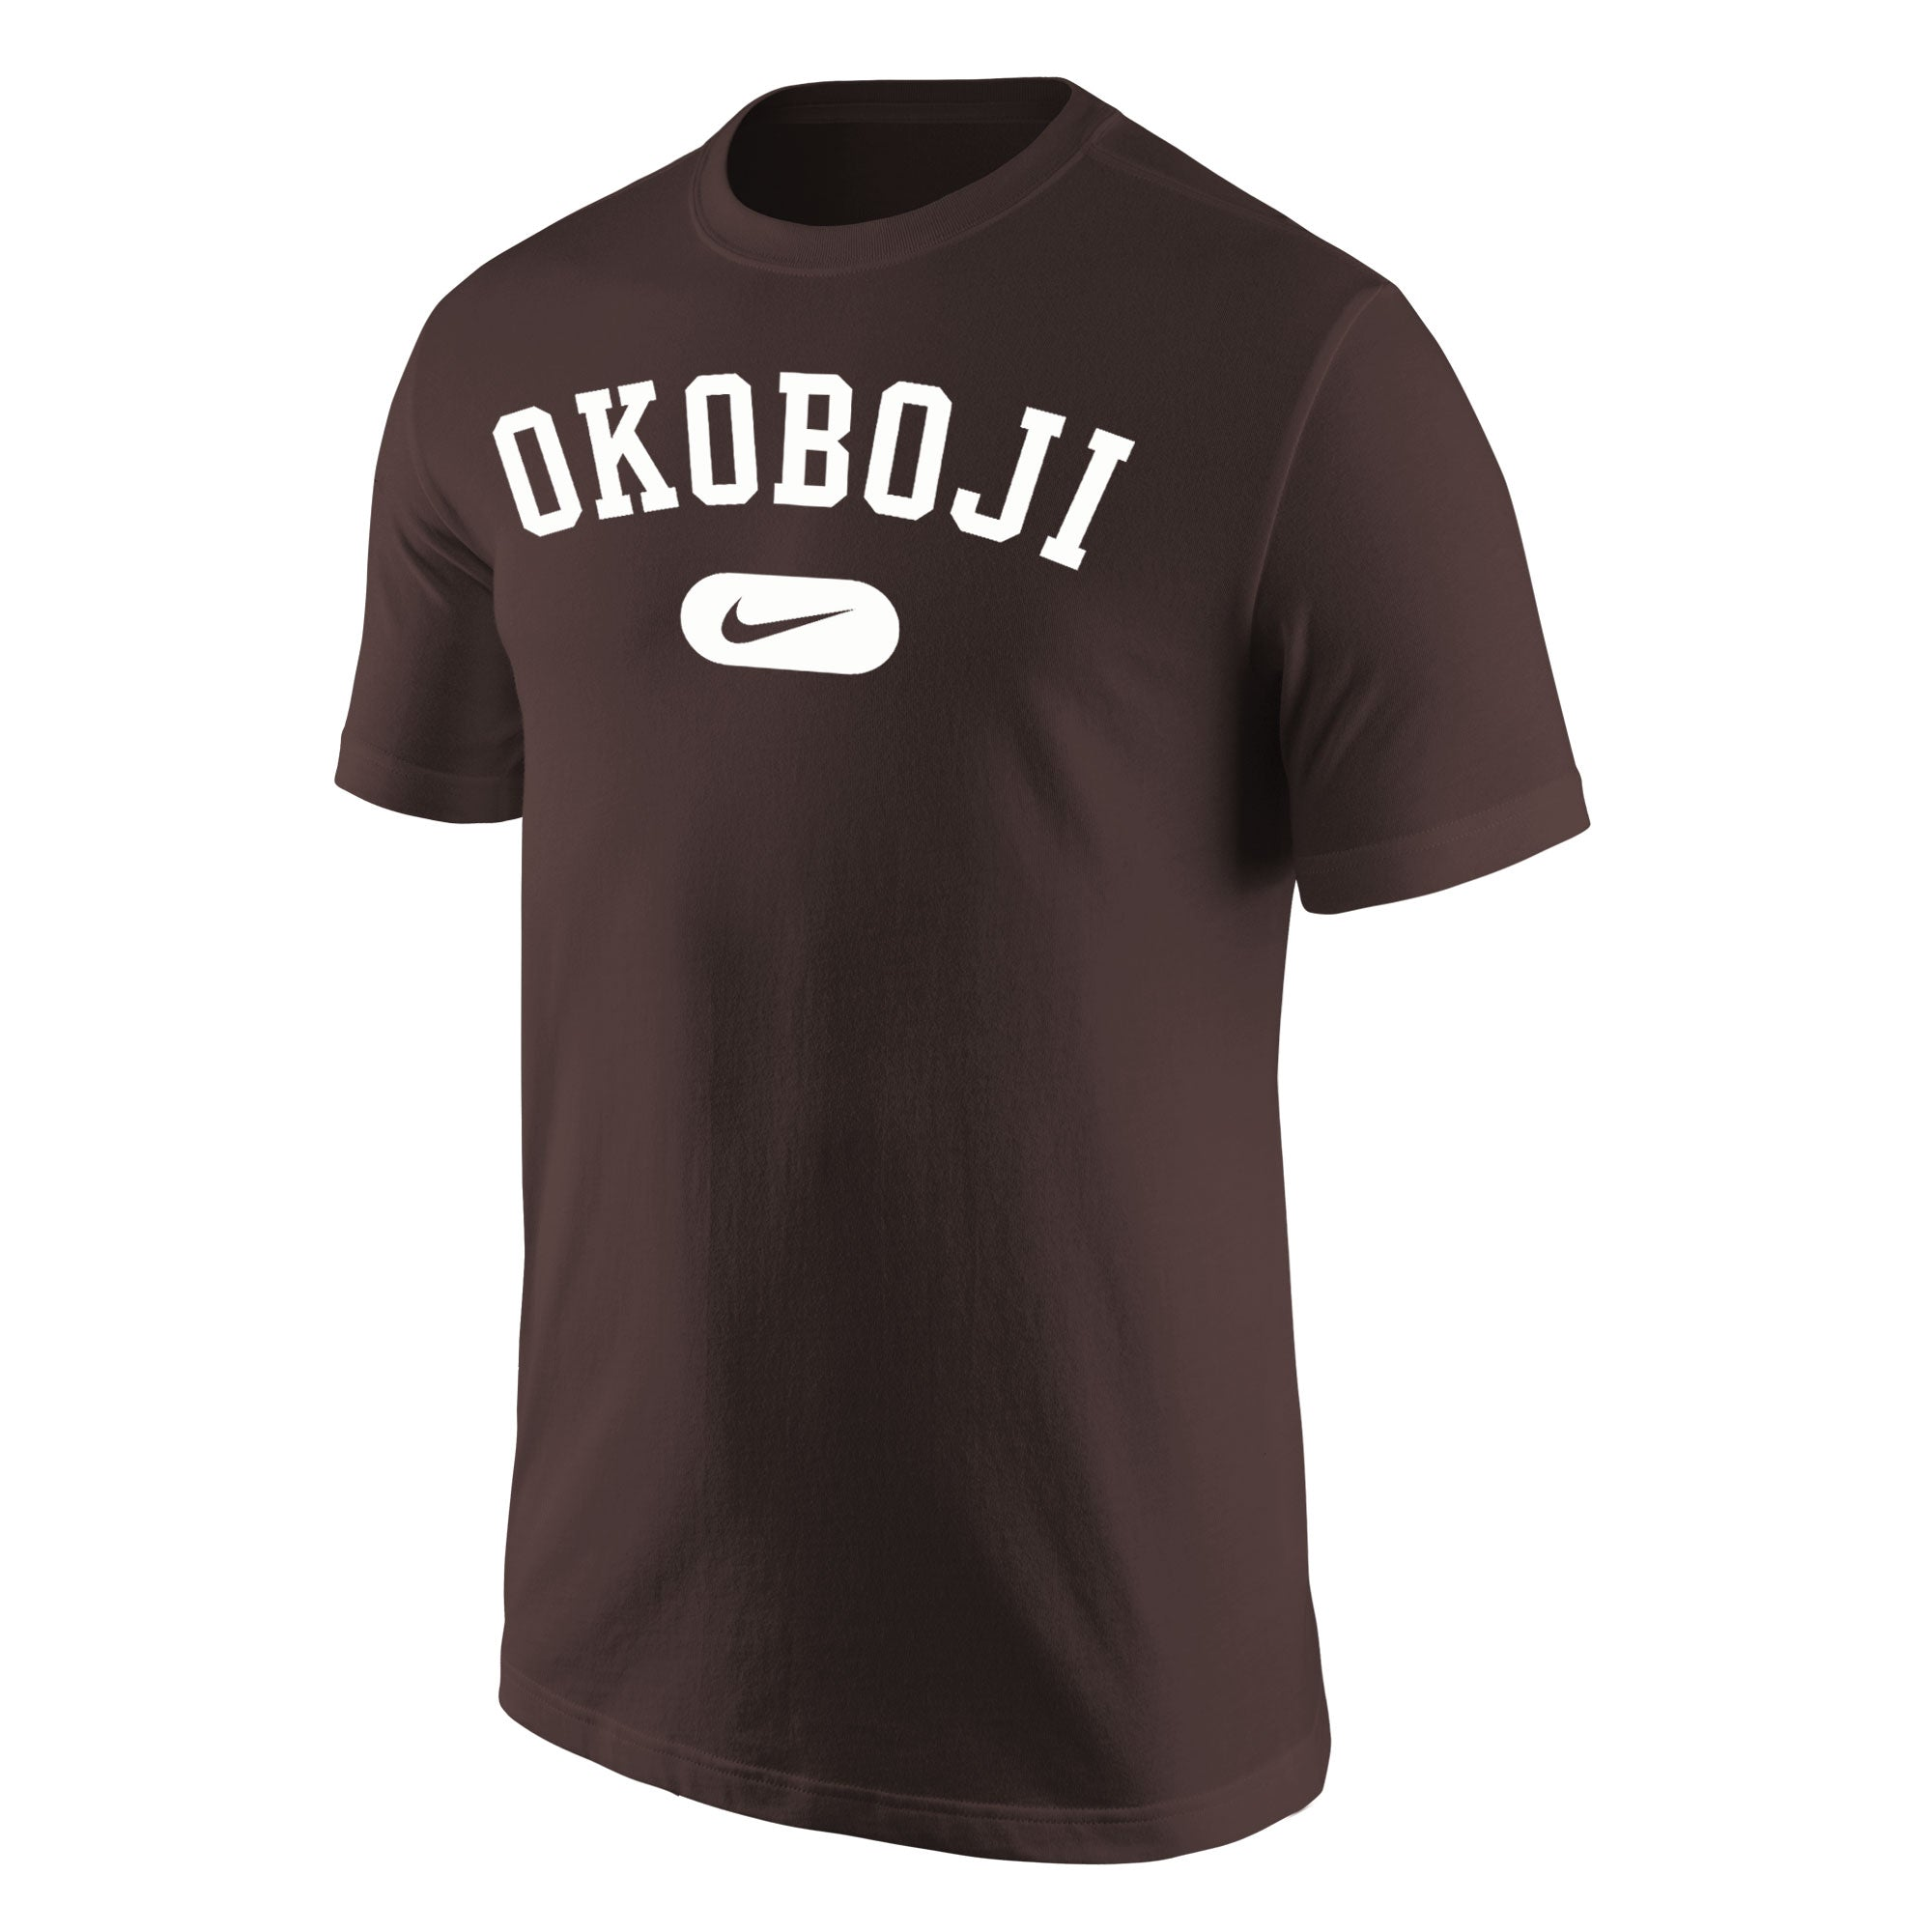 Okoboji Nike Core Cotton Short Sleeve Tee - Brown